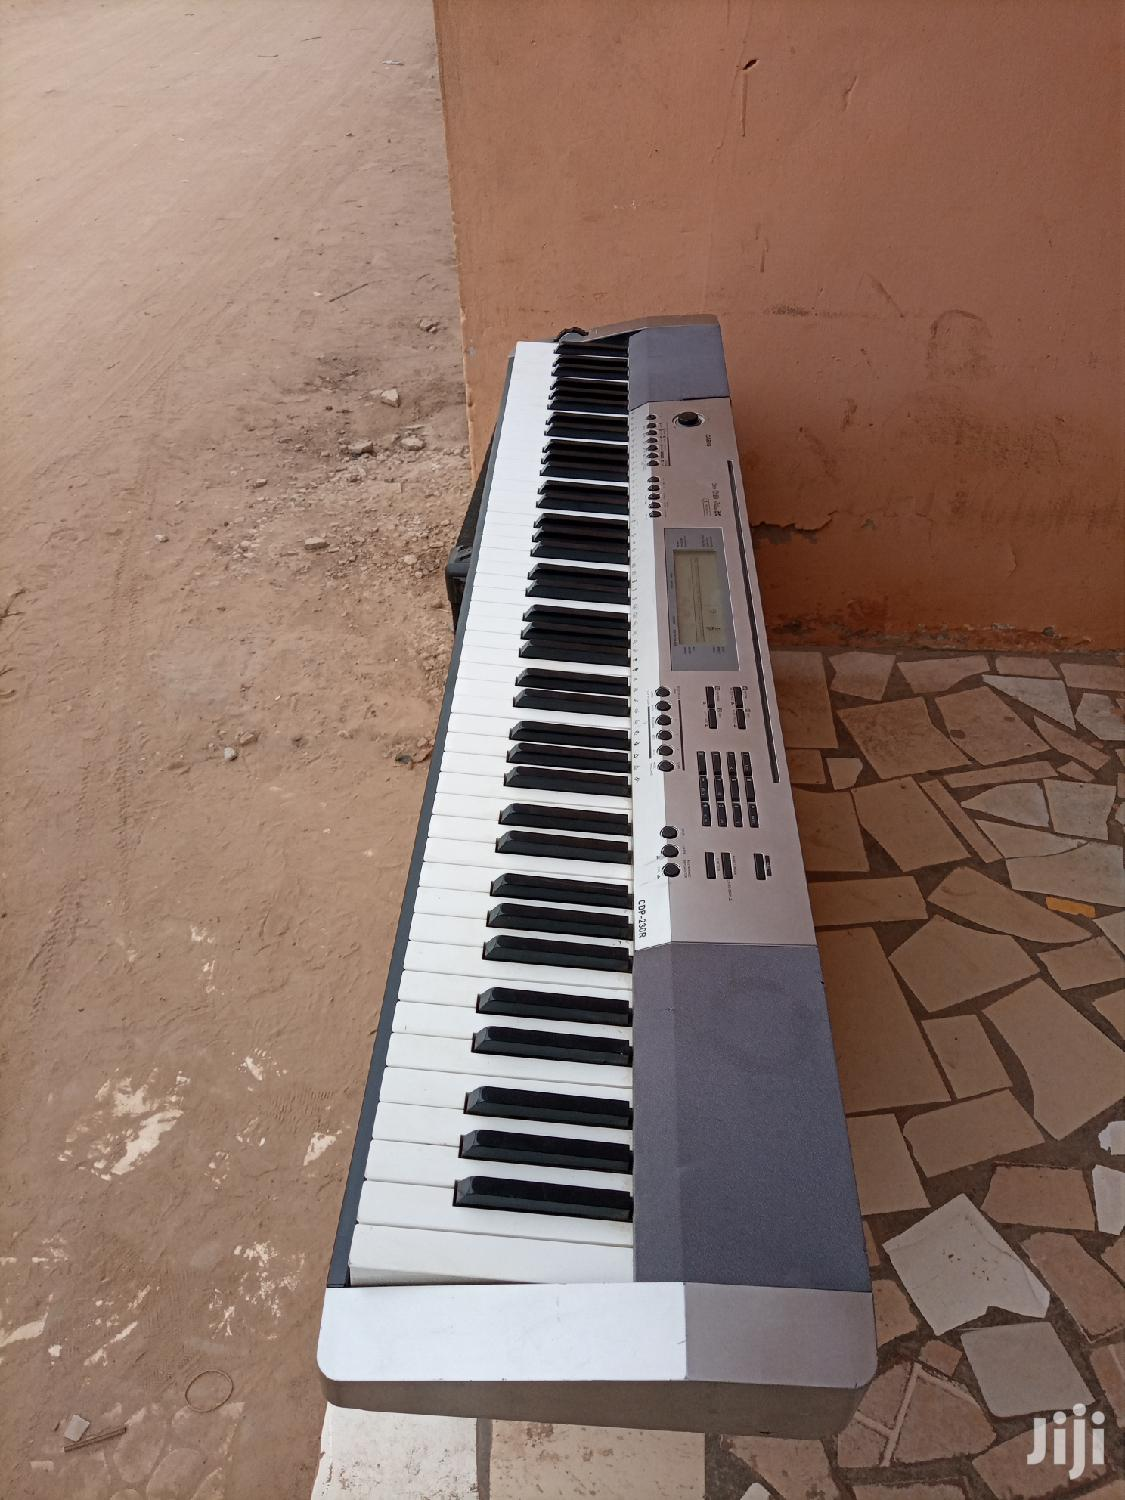 Casio Cdp 230r Digital Piano | Musical Instruments & Gear for sale in Accra Metropolitan, Greater Accra, Ghana